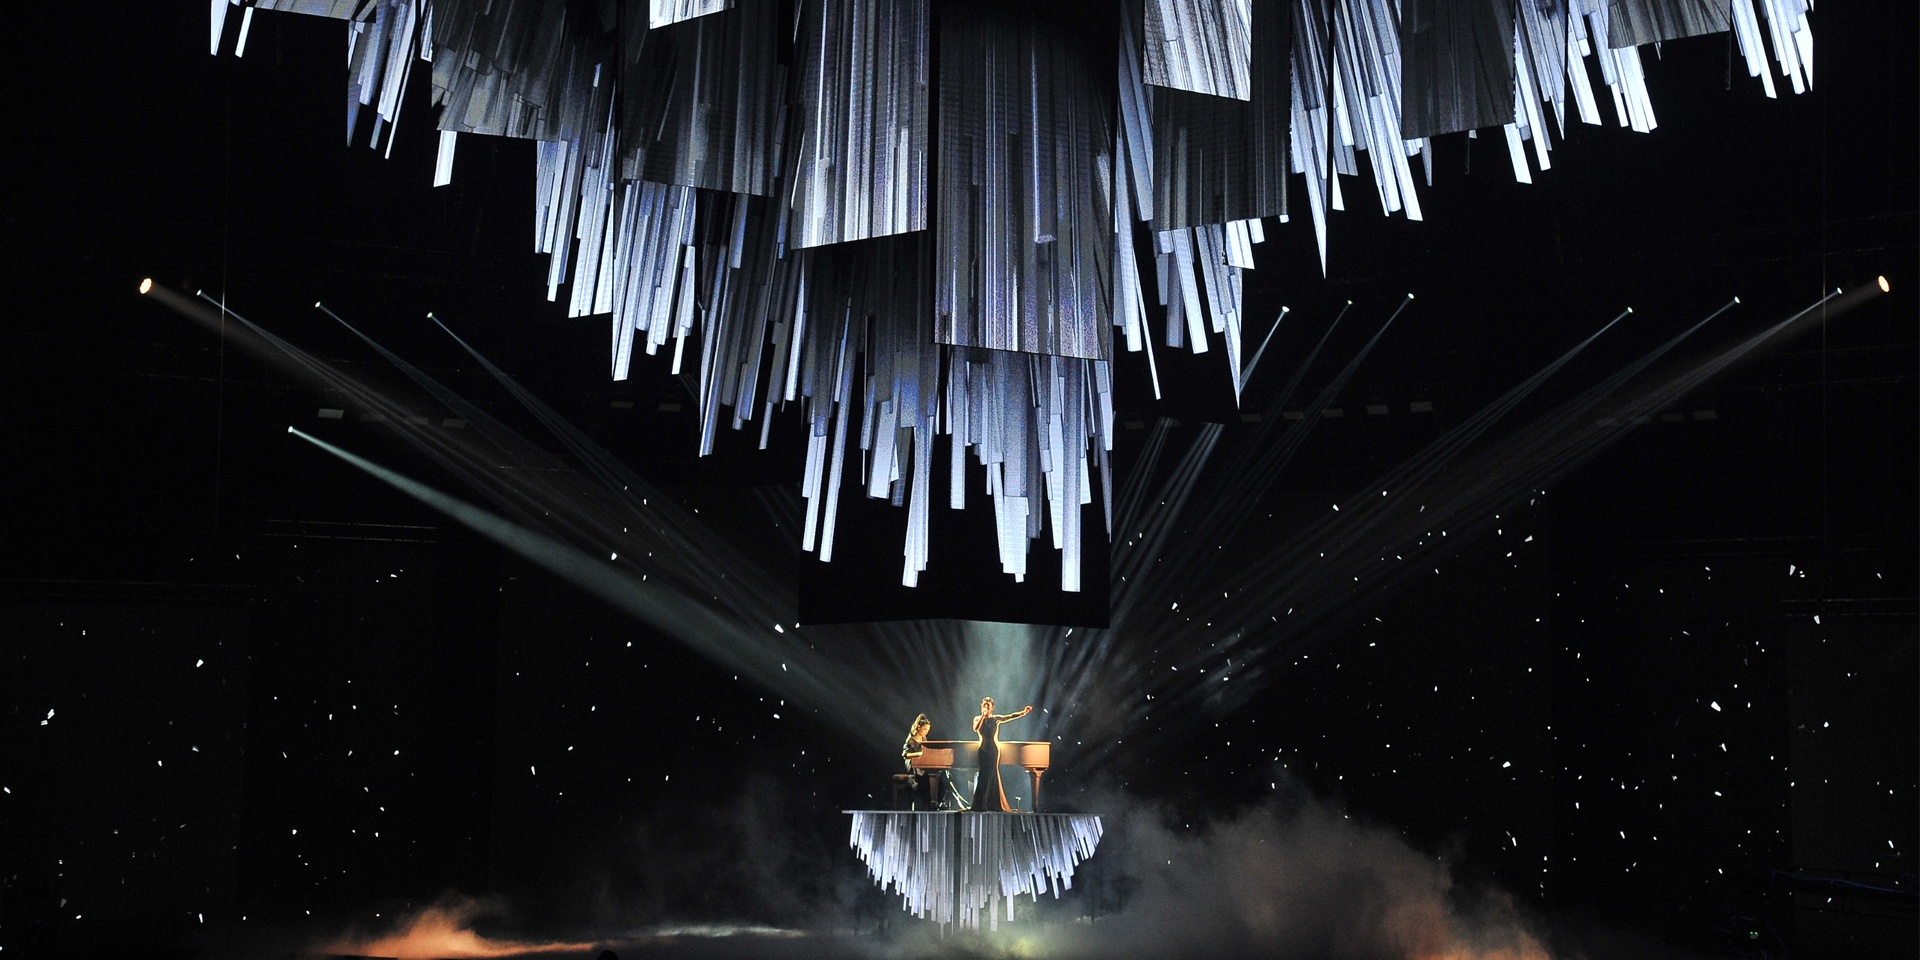 6 highlights from this year's 29th Golden Melody Awards